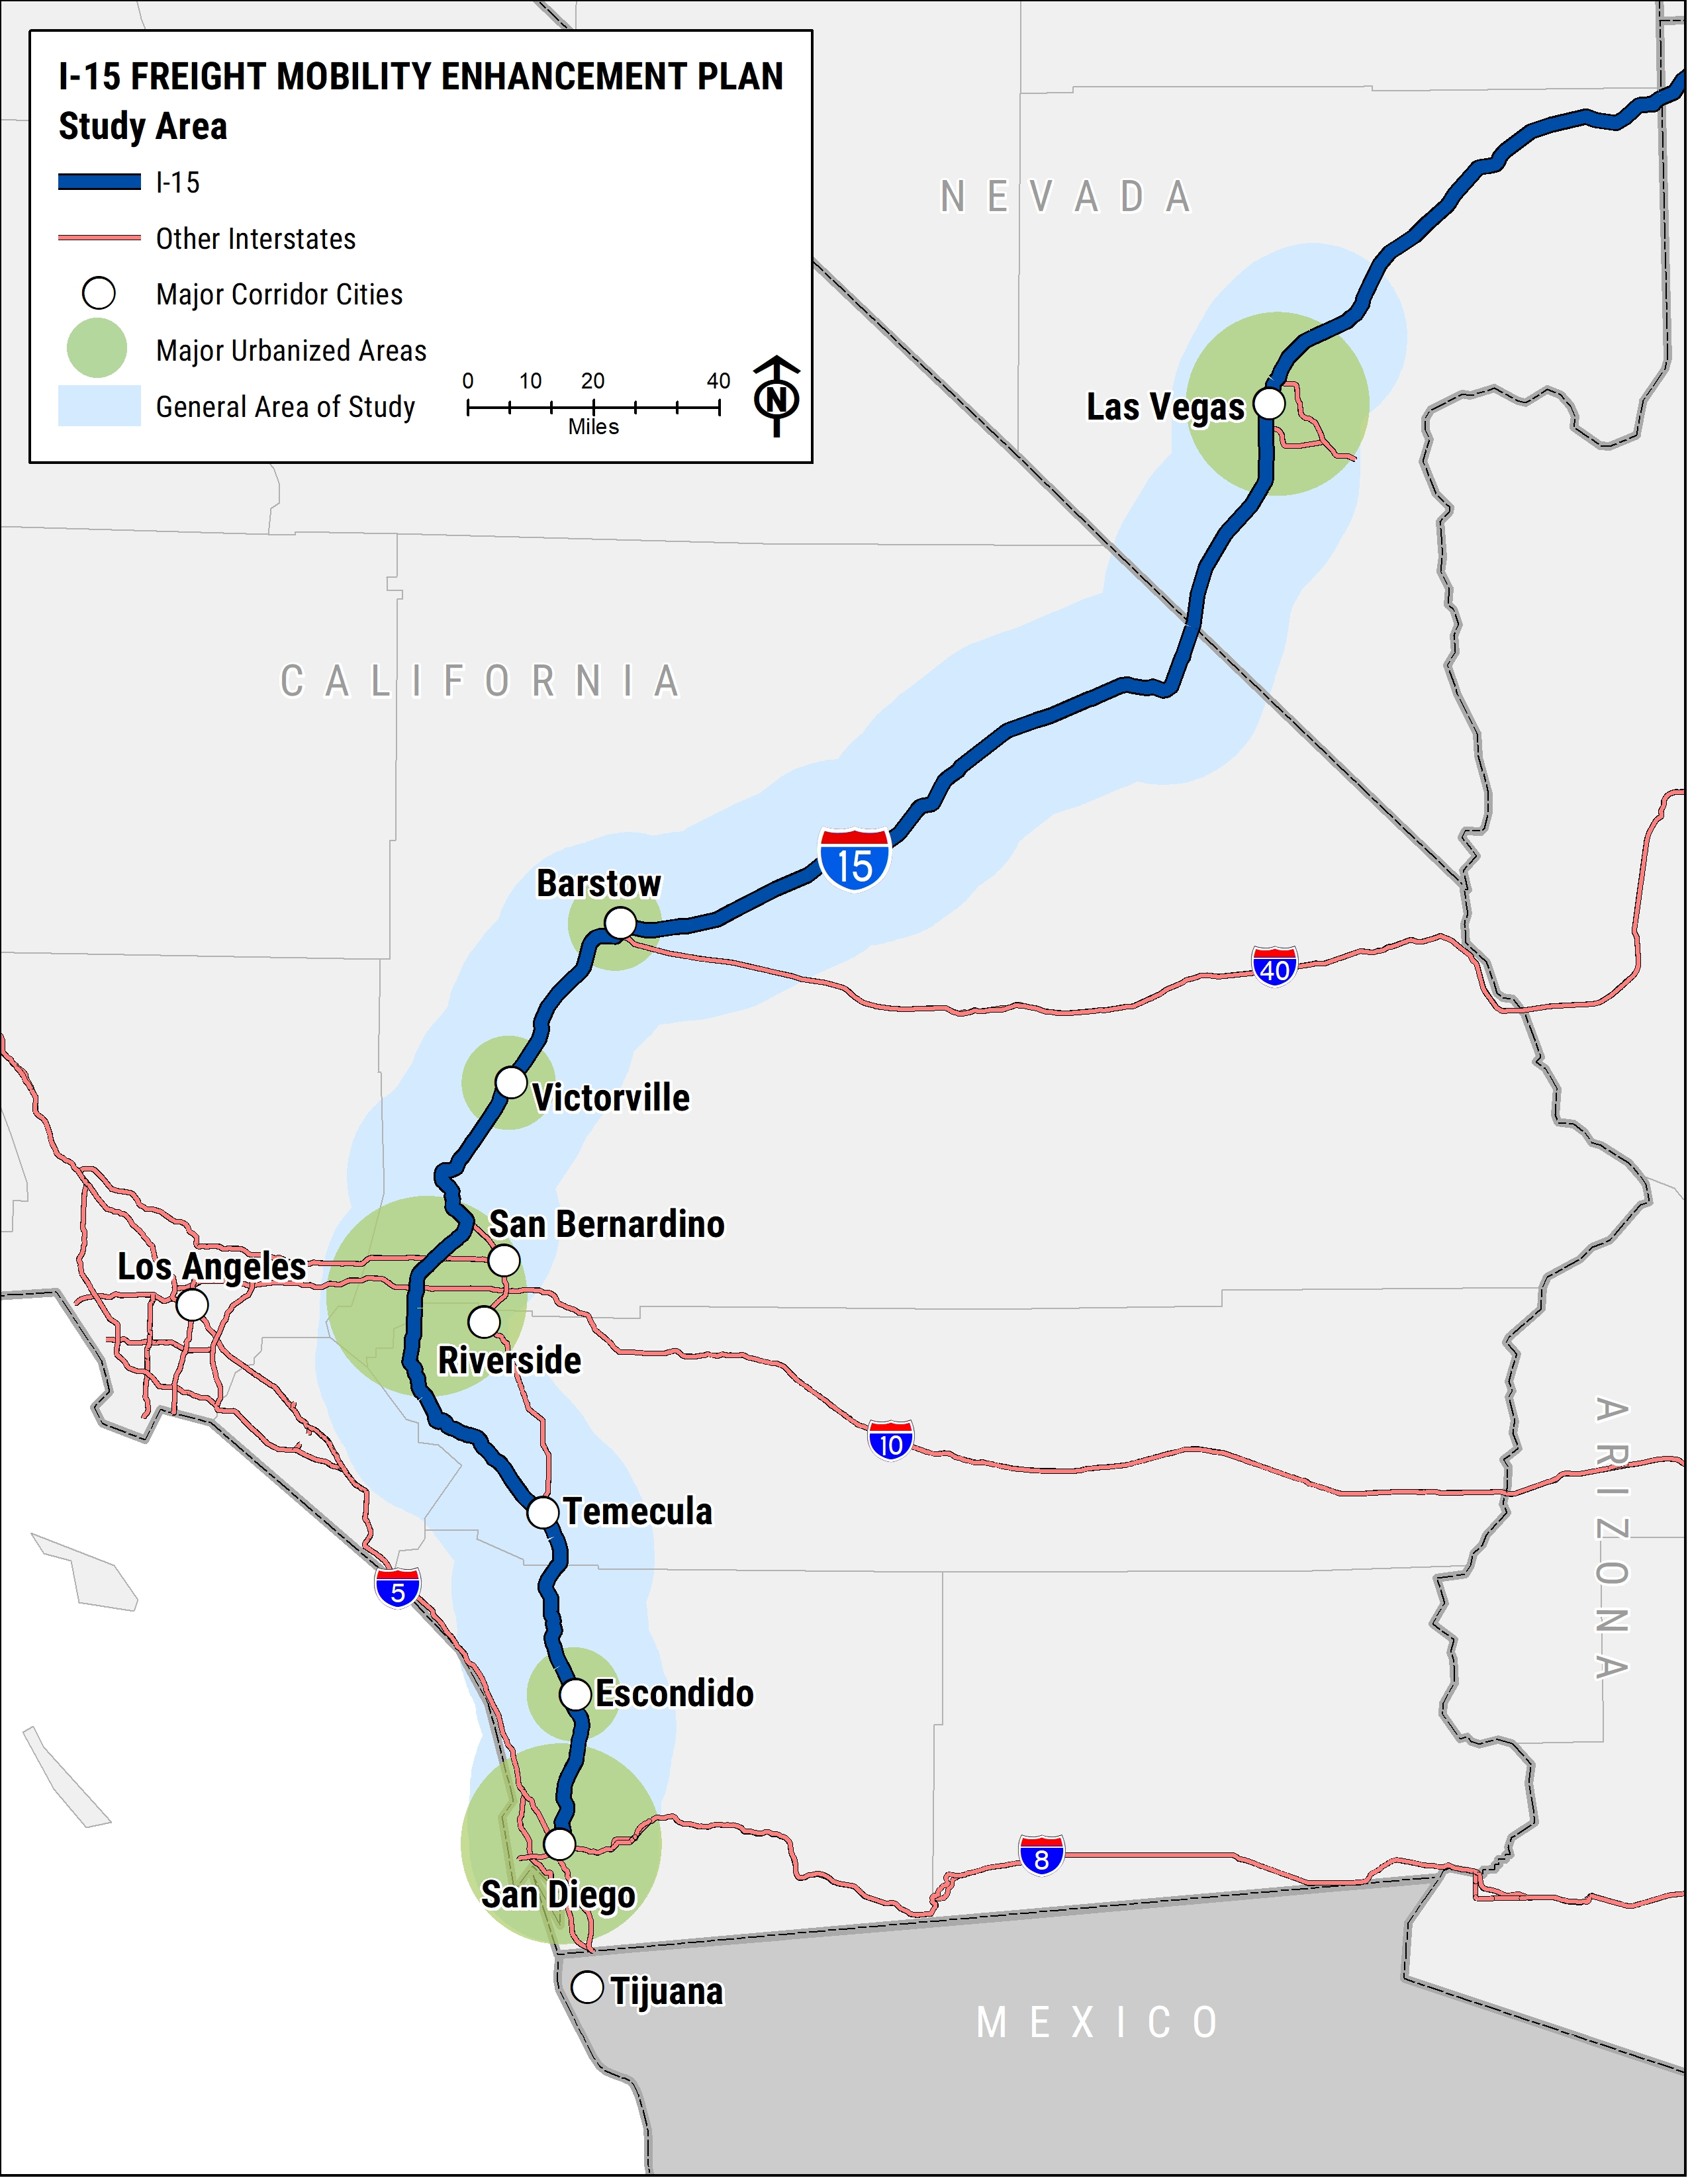 Map showing I-15 freight mobility enhancement plan from las vegas to san diego